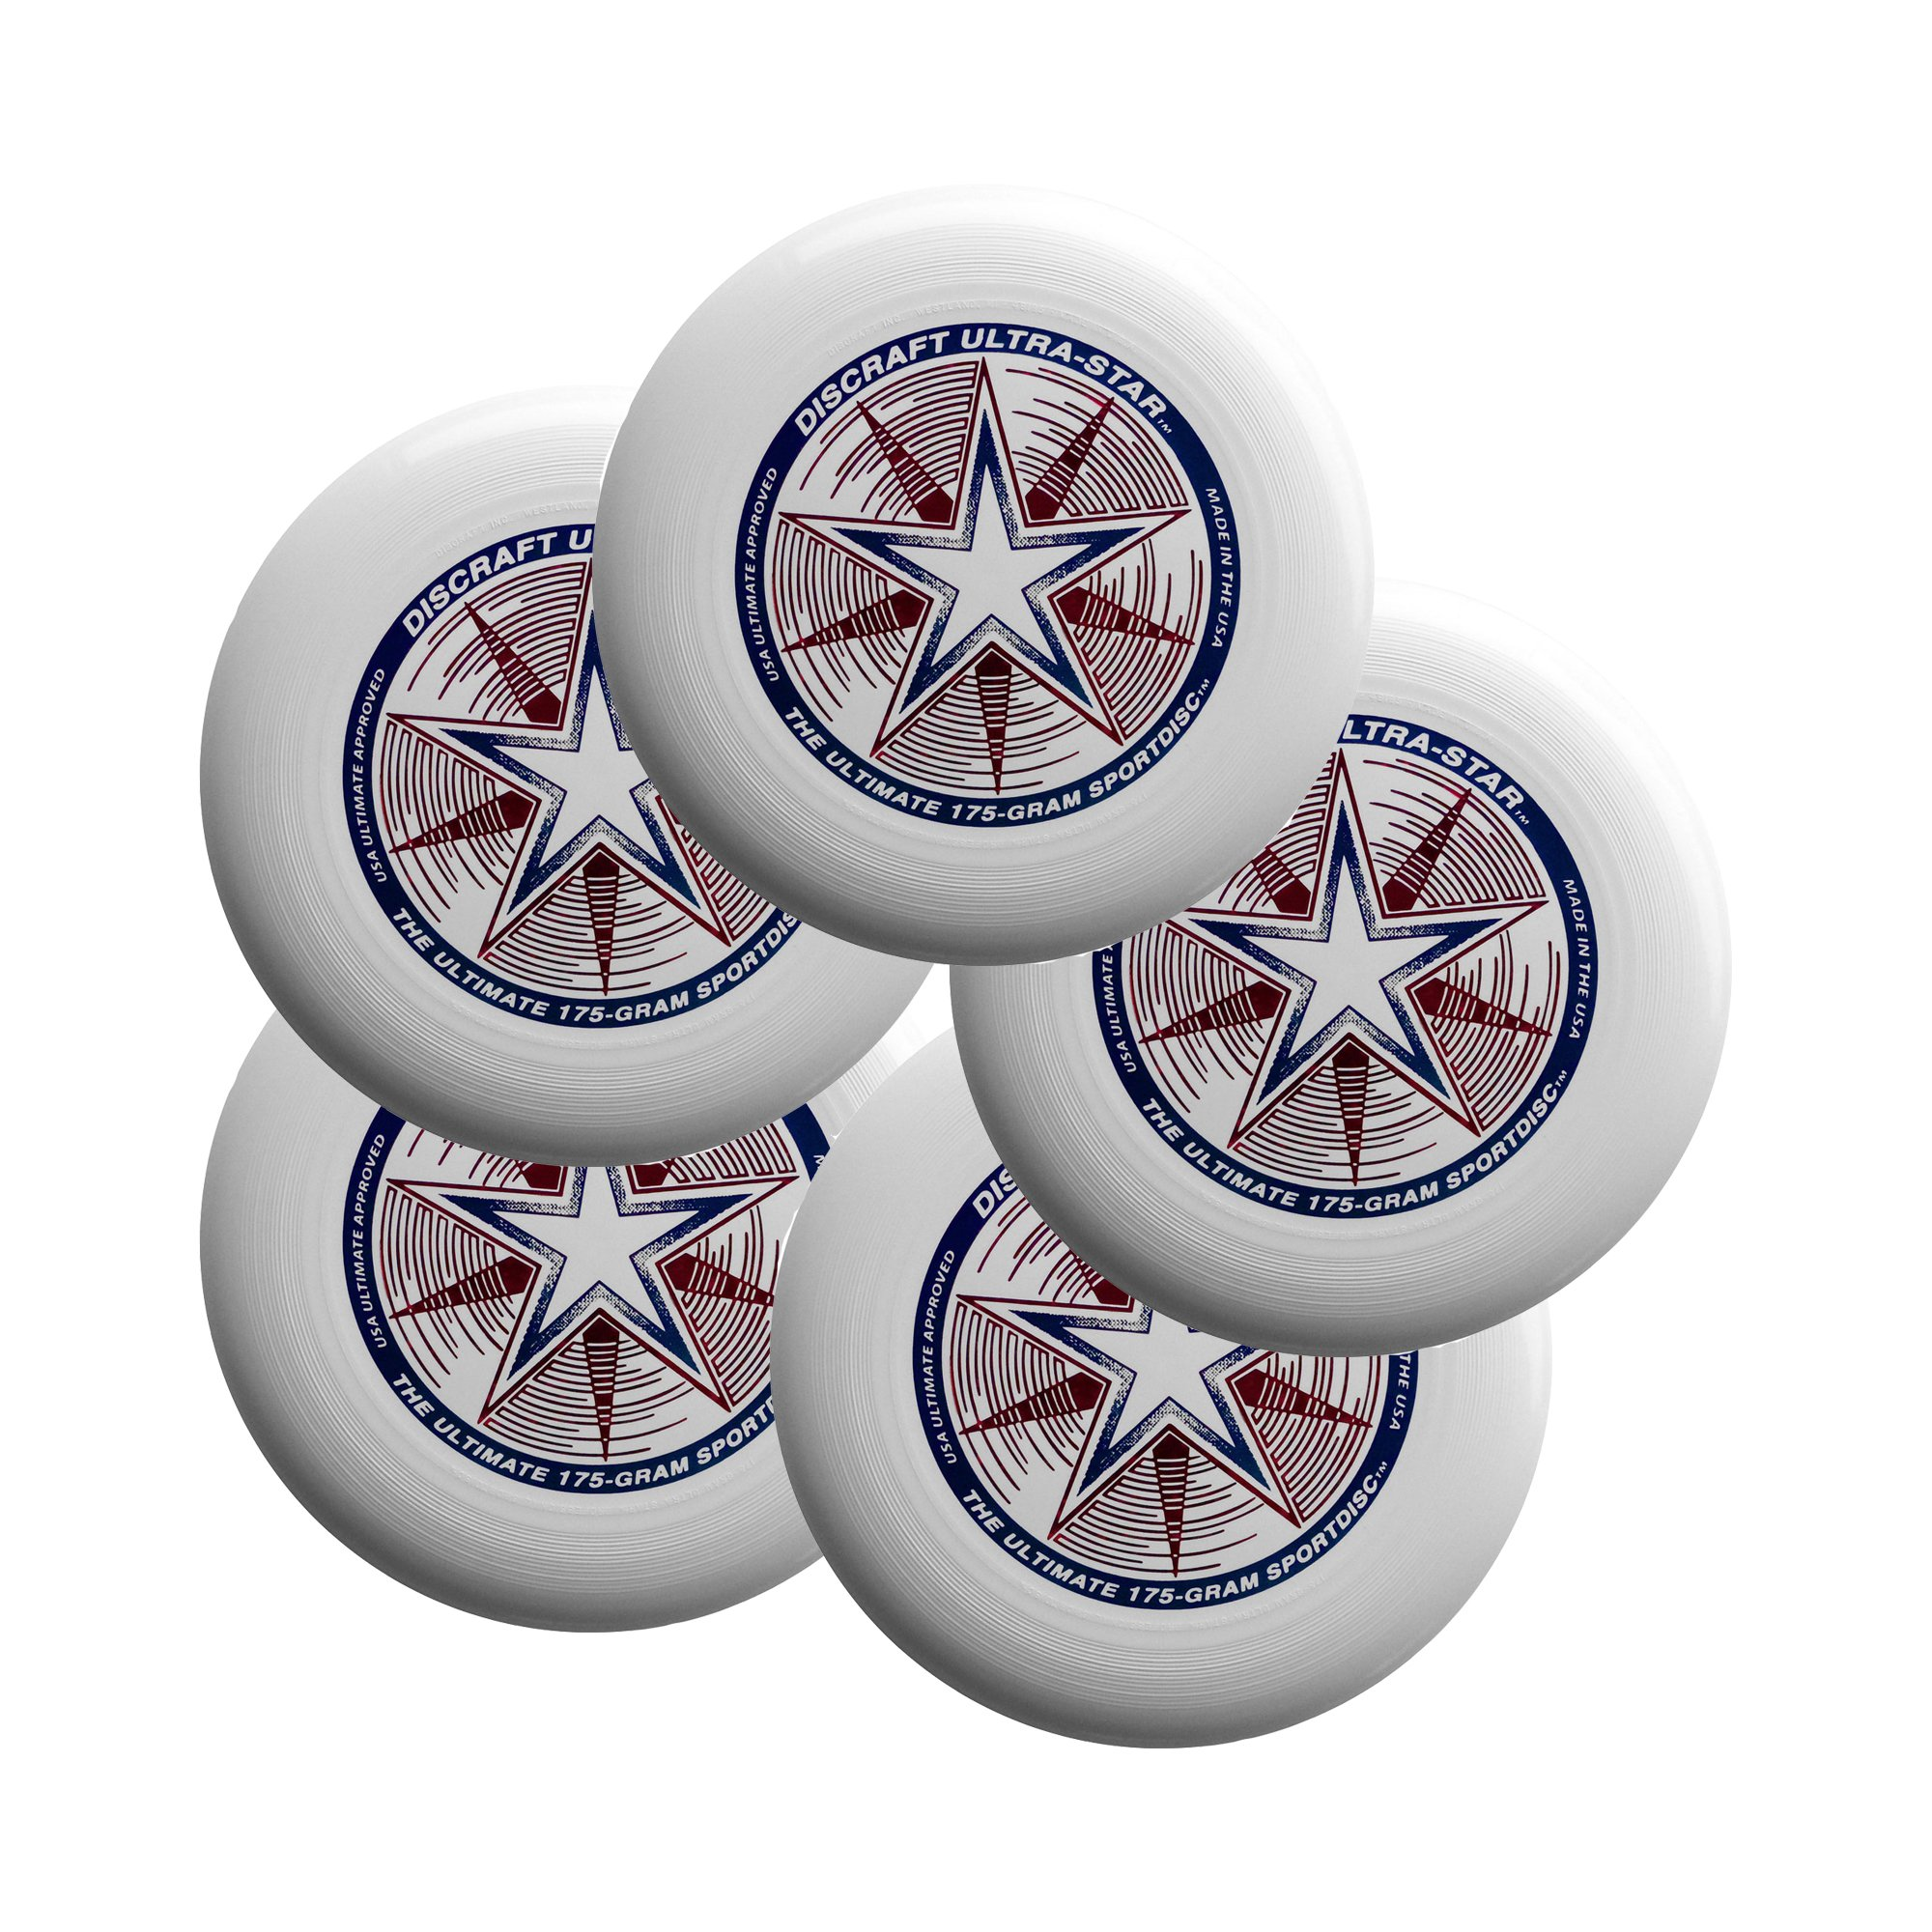 Discraft Ultra-Star 175g Ultimate Sportdisc White (5 Pack) by Discraft